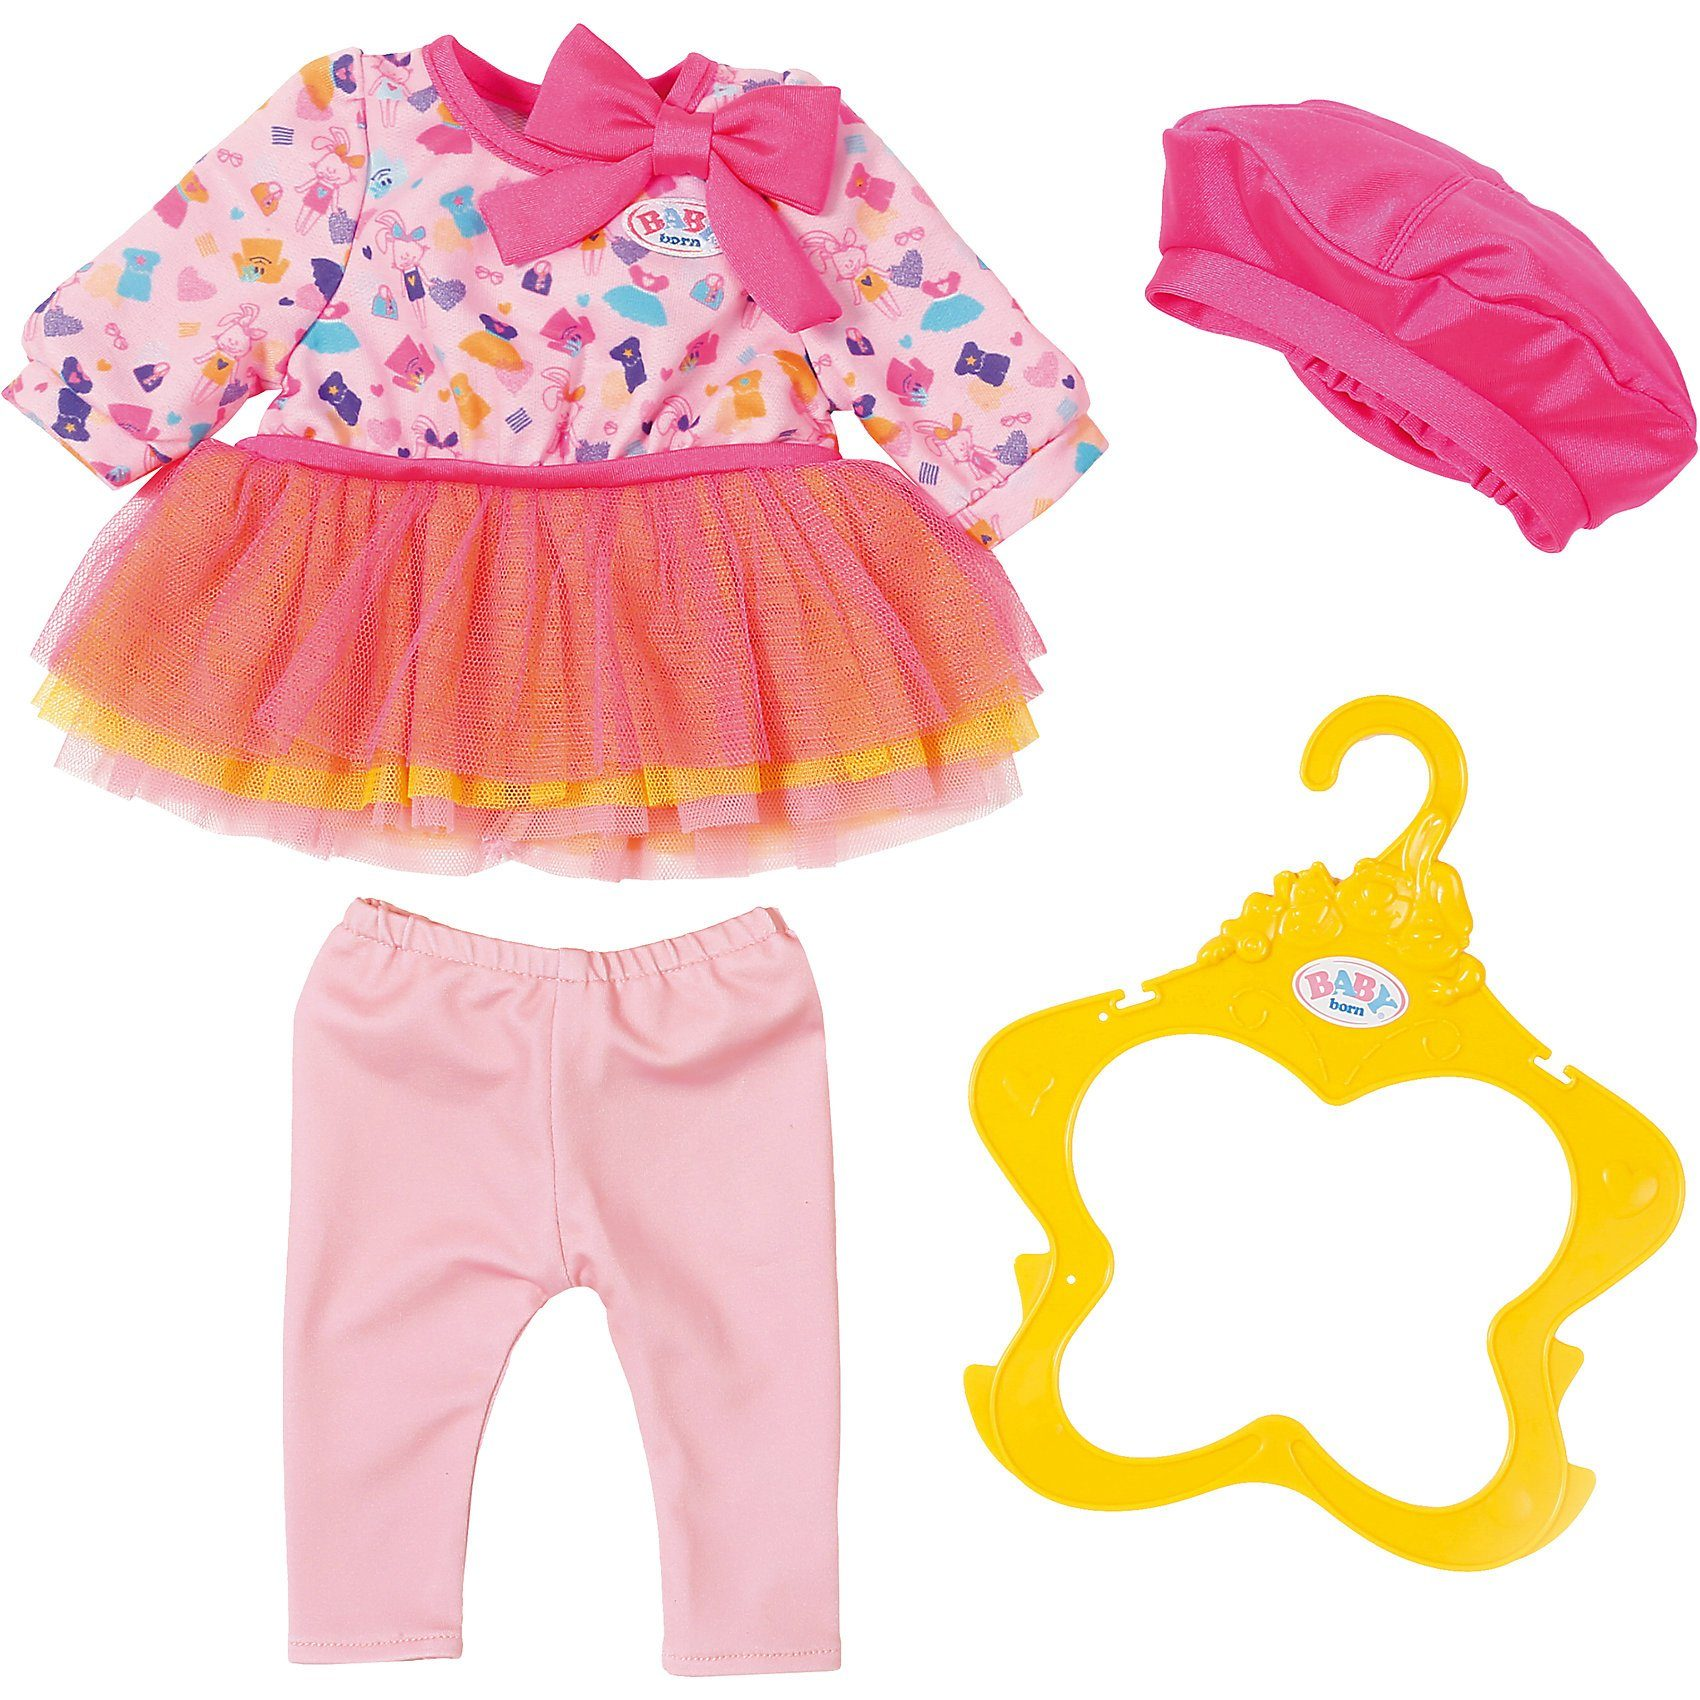 Zapf Creation BABY born® Fashion Kollektion Gemustert